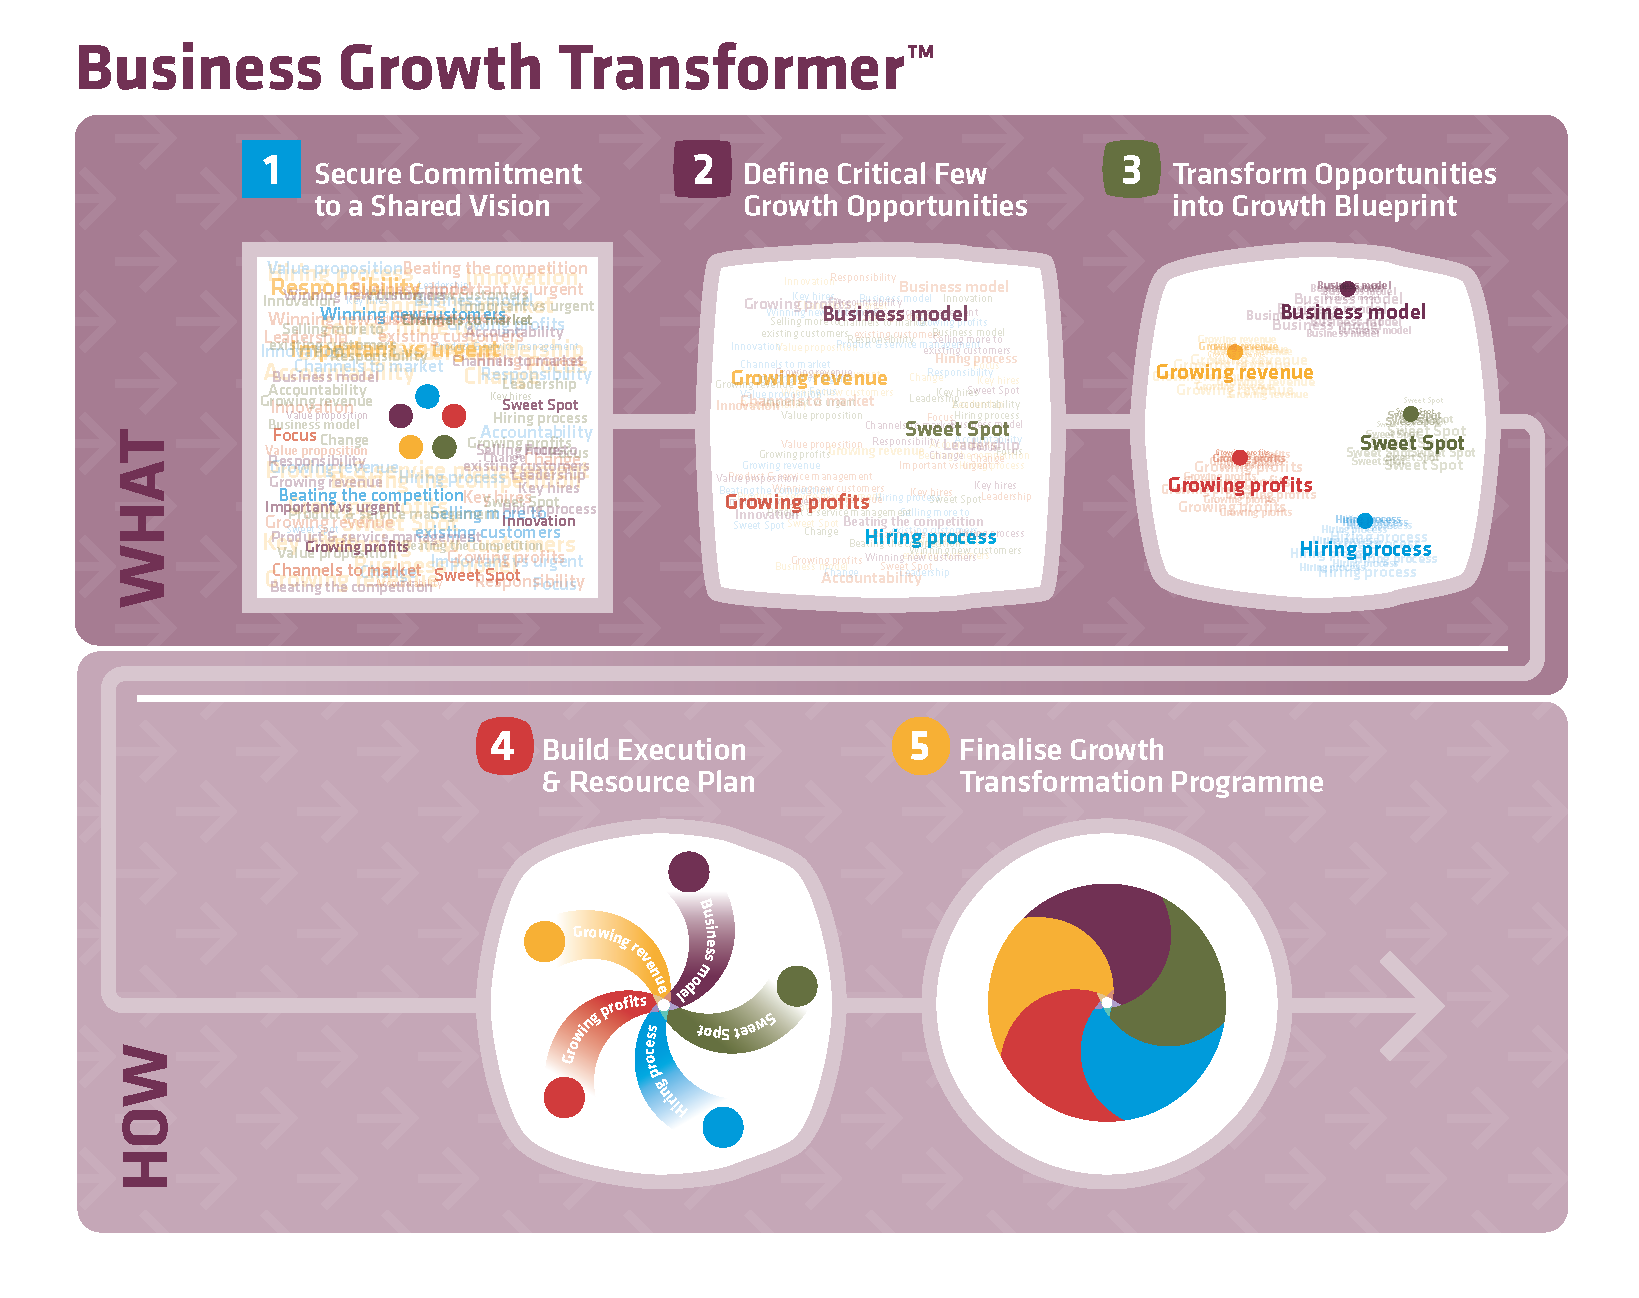 Business Growth Transformer Marketing Document